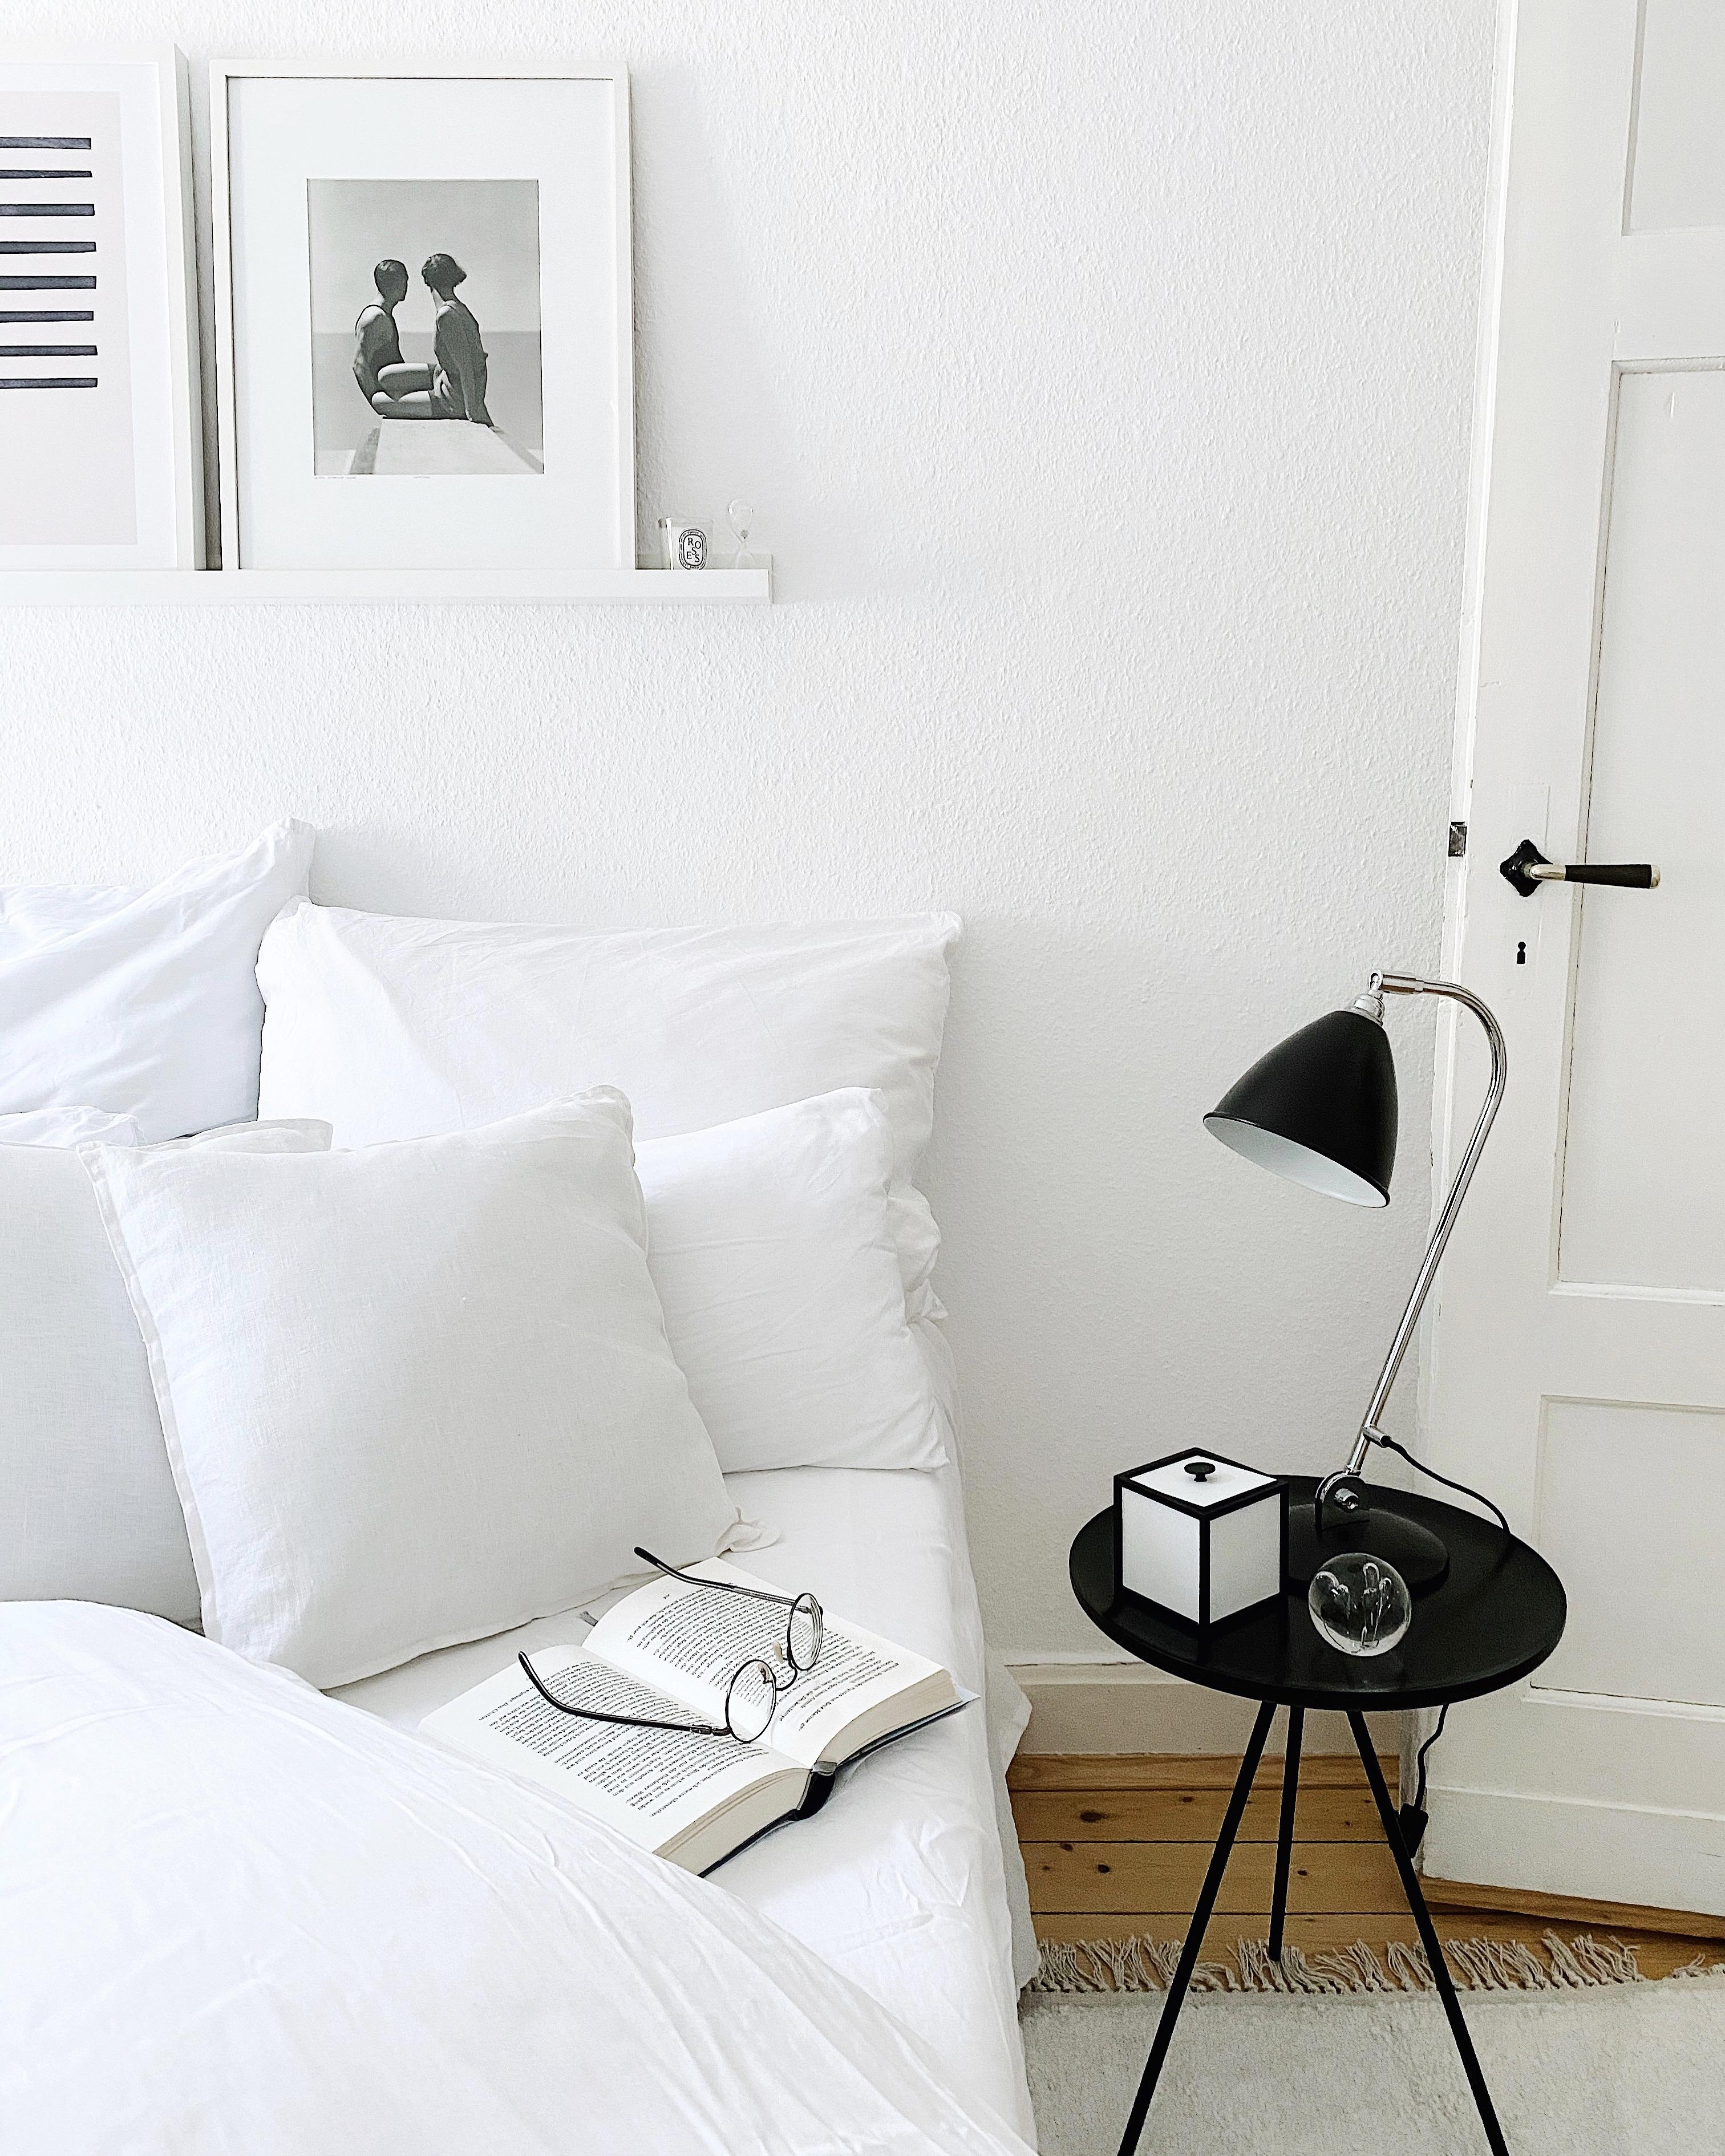 In the white room altbau altbauliebe bedroom allwhite  5e3065bf edfc 4e02 b7c7 14b6124c0a4a